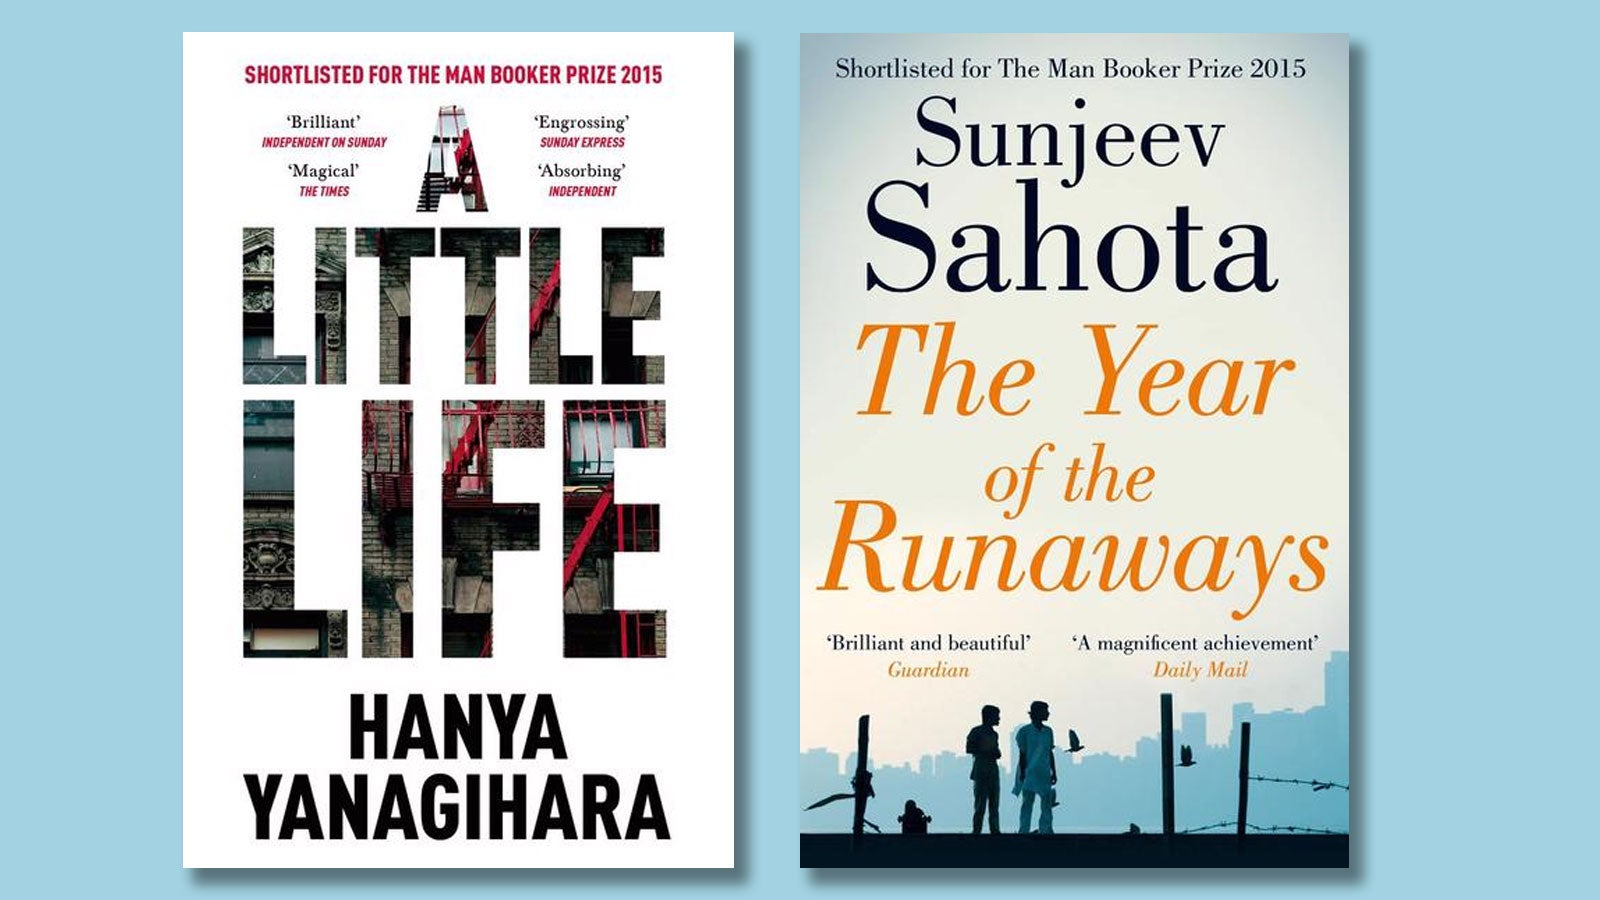 Hanya Yanagihara's A Little Life and Sunjeev Sahota's The Year of the Runaways on a blue background.